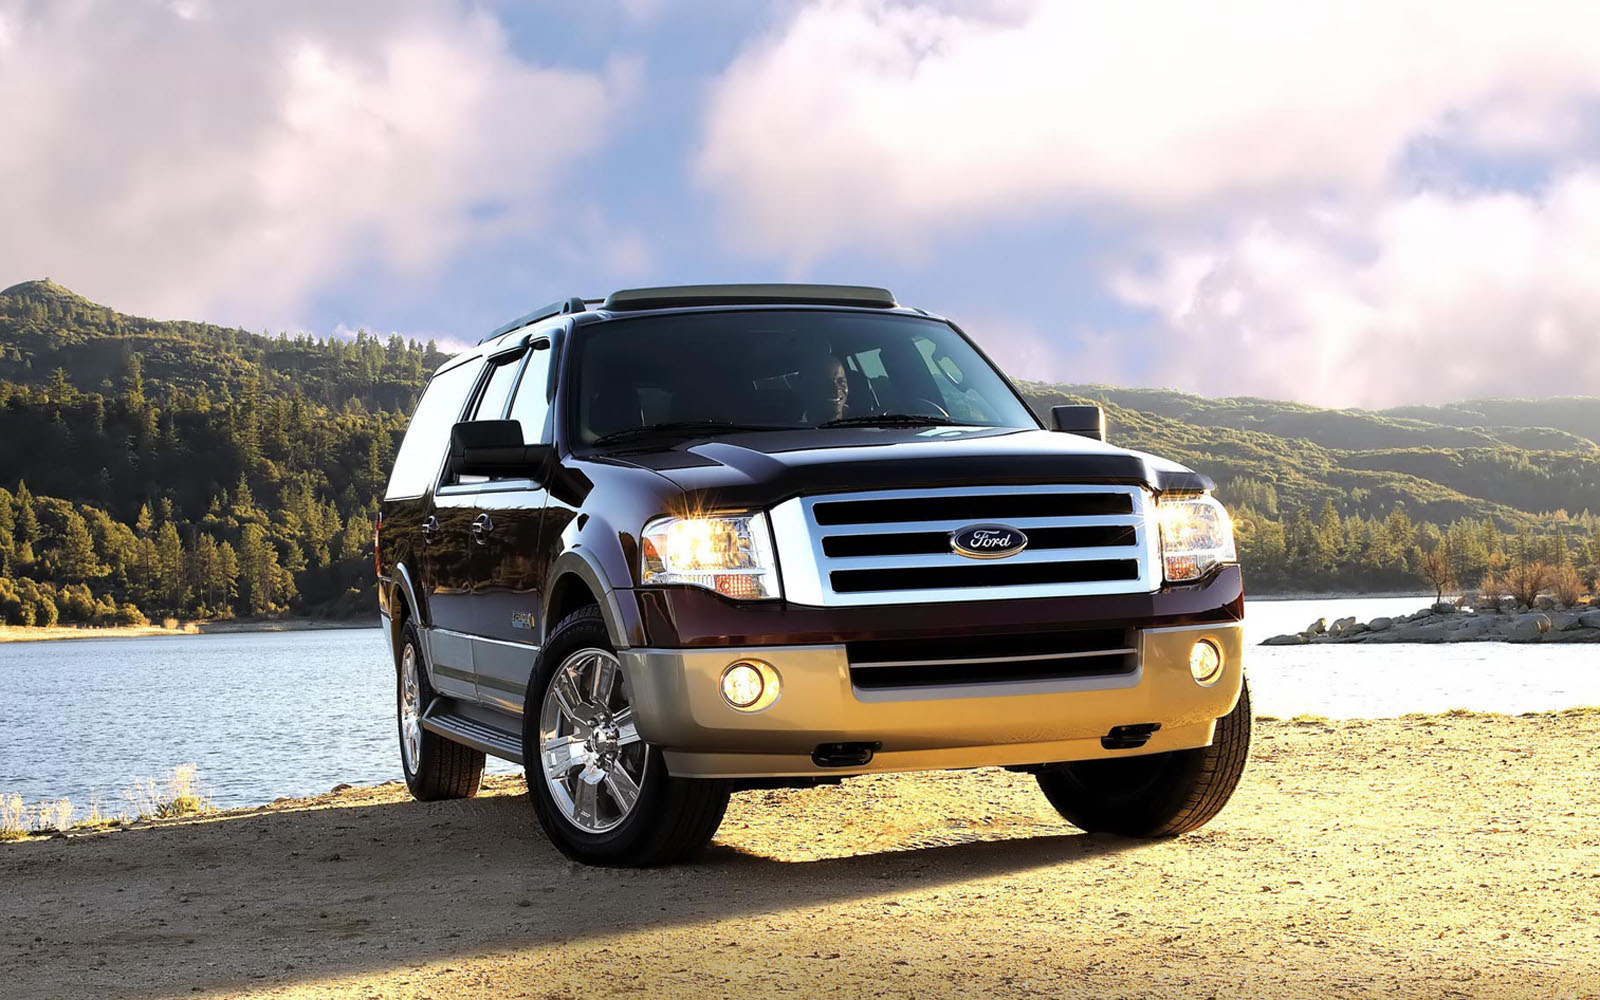 3d Hd Wallpapers For Windows 8 Wallpapers Ford Expedition Suv Car Wallpapers